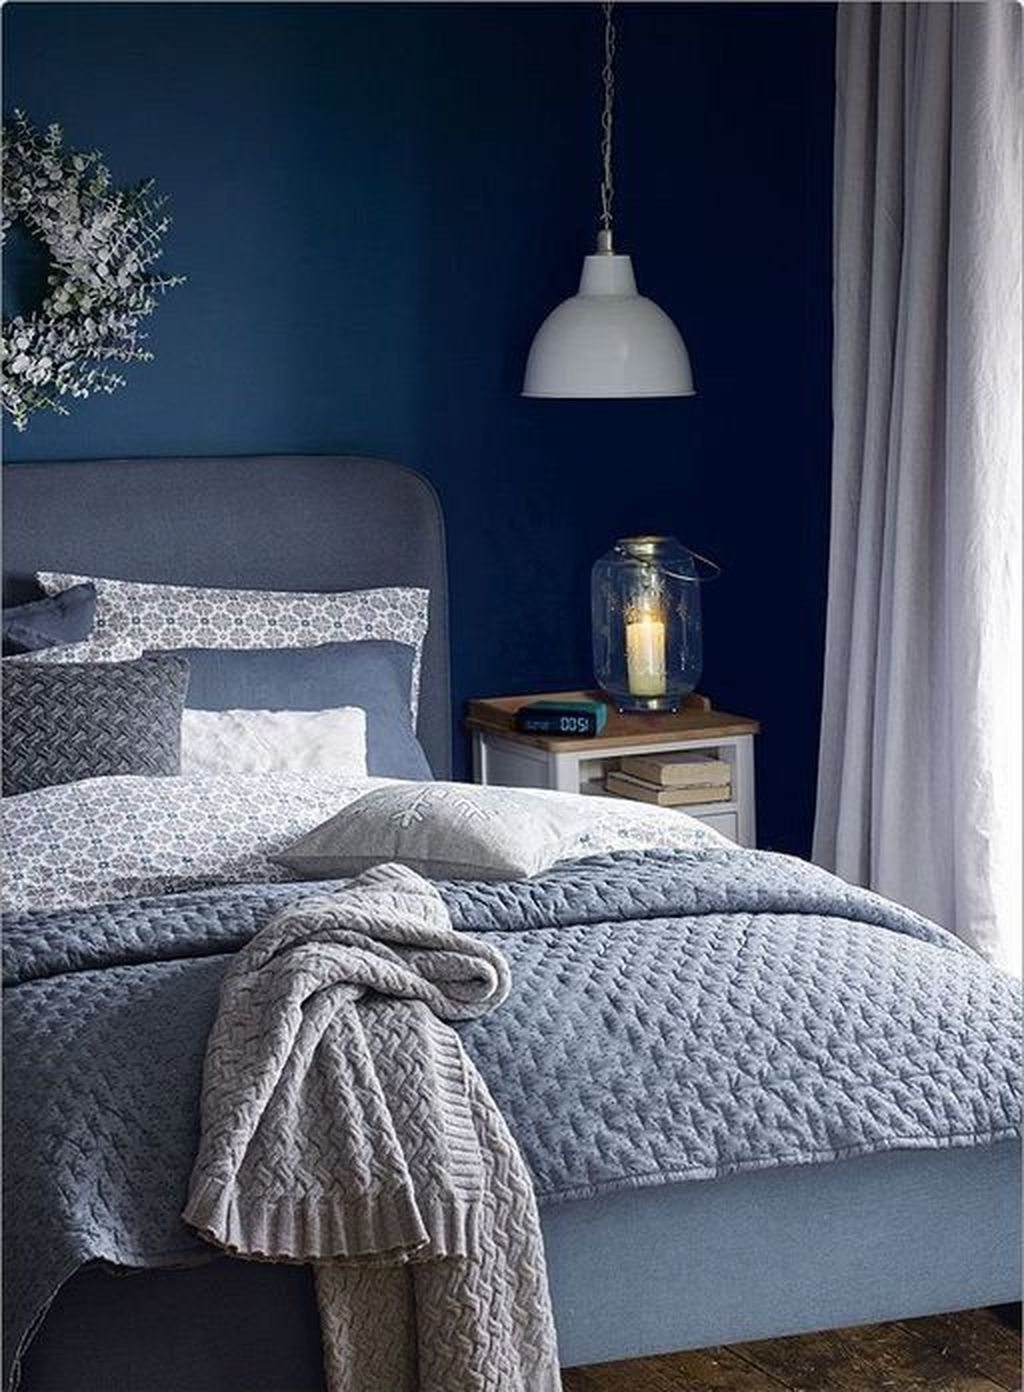 inspiring bedroom decoration ideas for winter that will make you